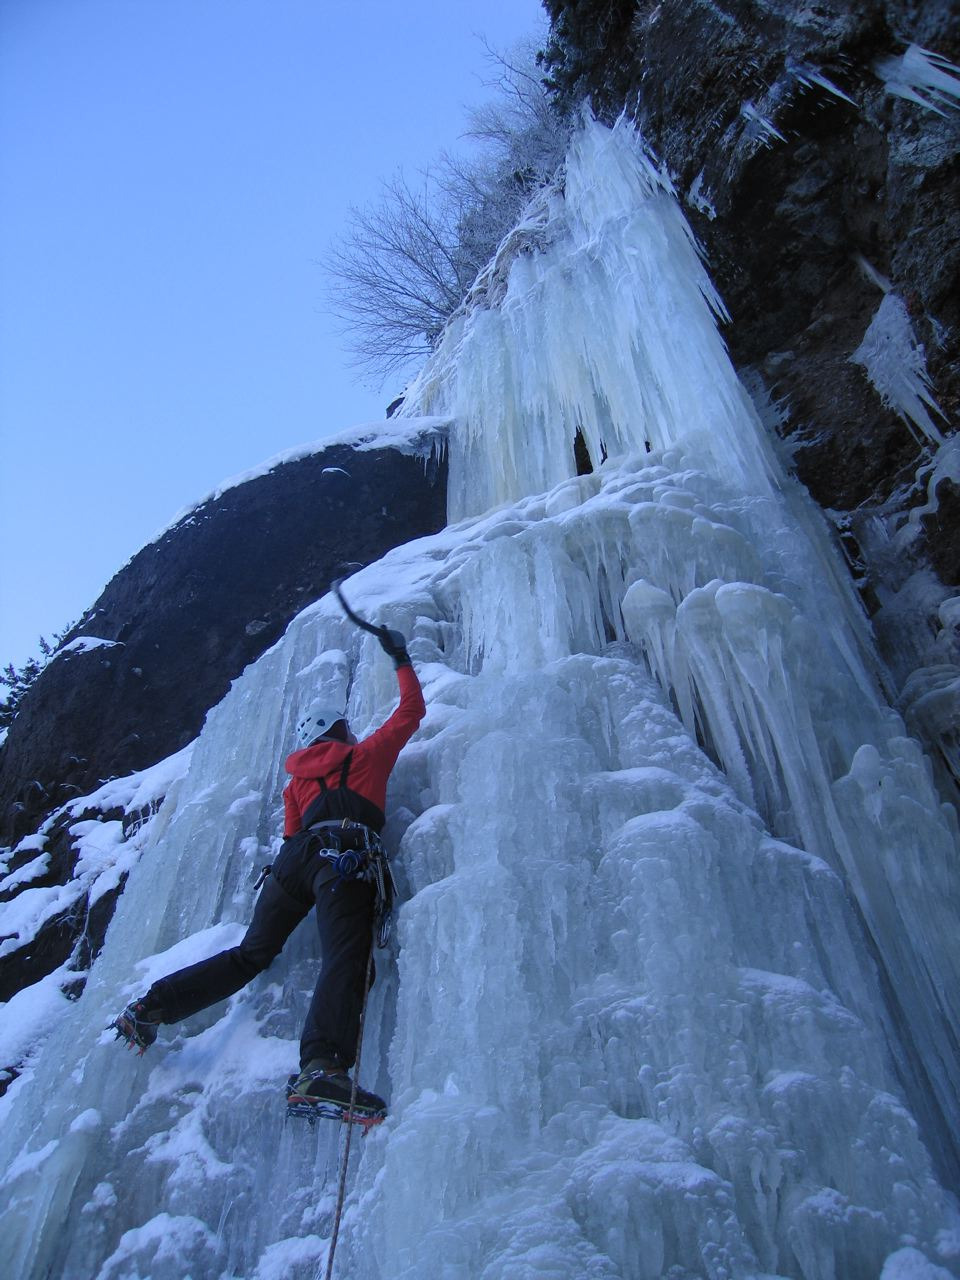 another scene from hylite canyon during the icebreaker